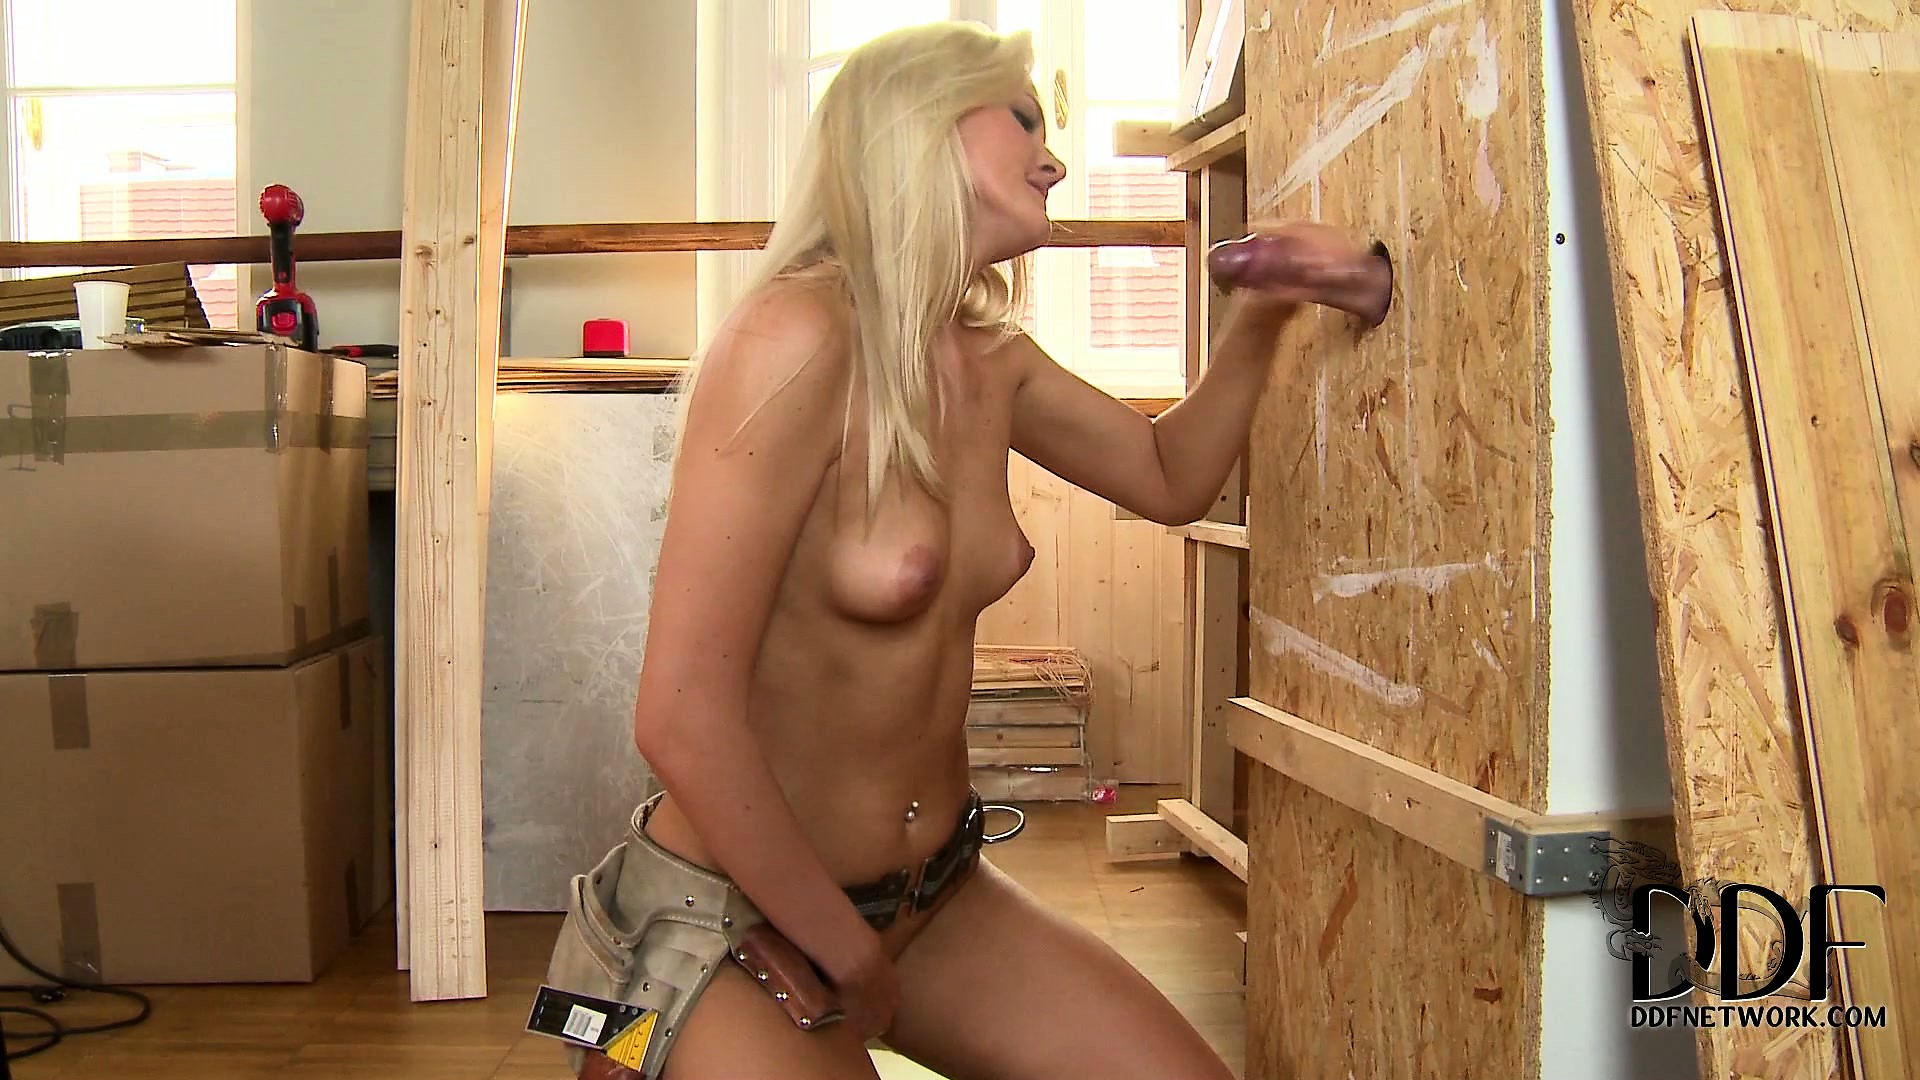 Porno Video of A Glory Hole With A Big Dick Is Exactly What She Needs In Her Renovated House